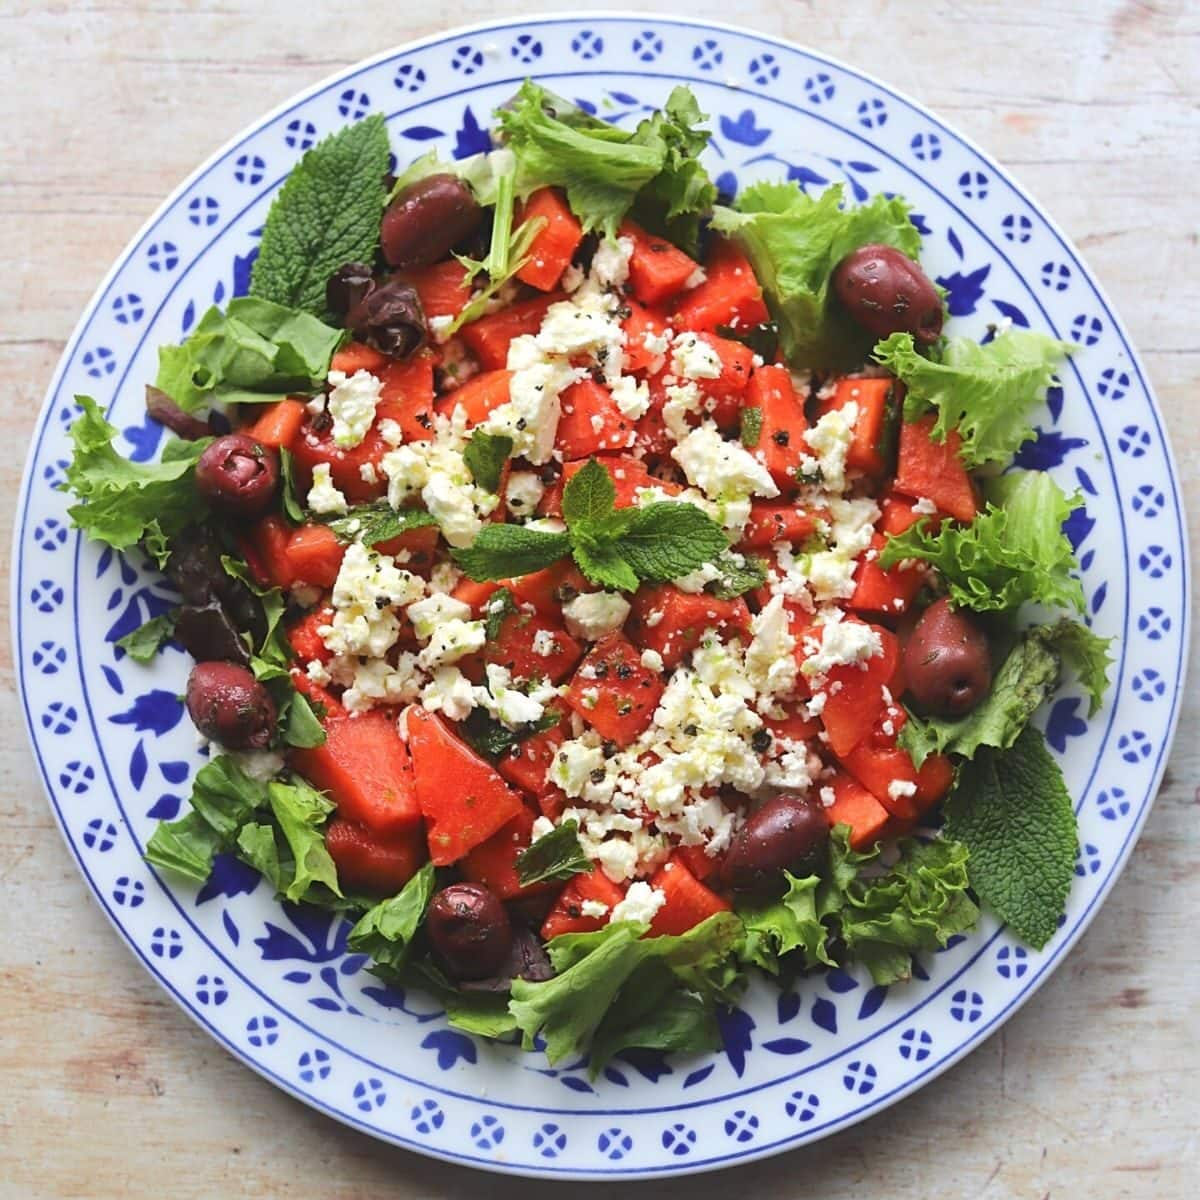 Watermelon feta salad with herbs on painted plate.